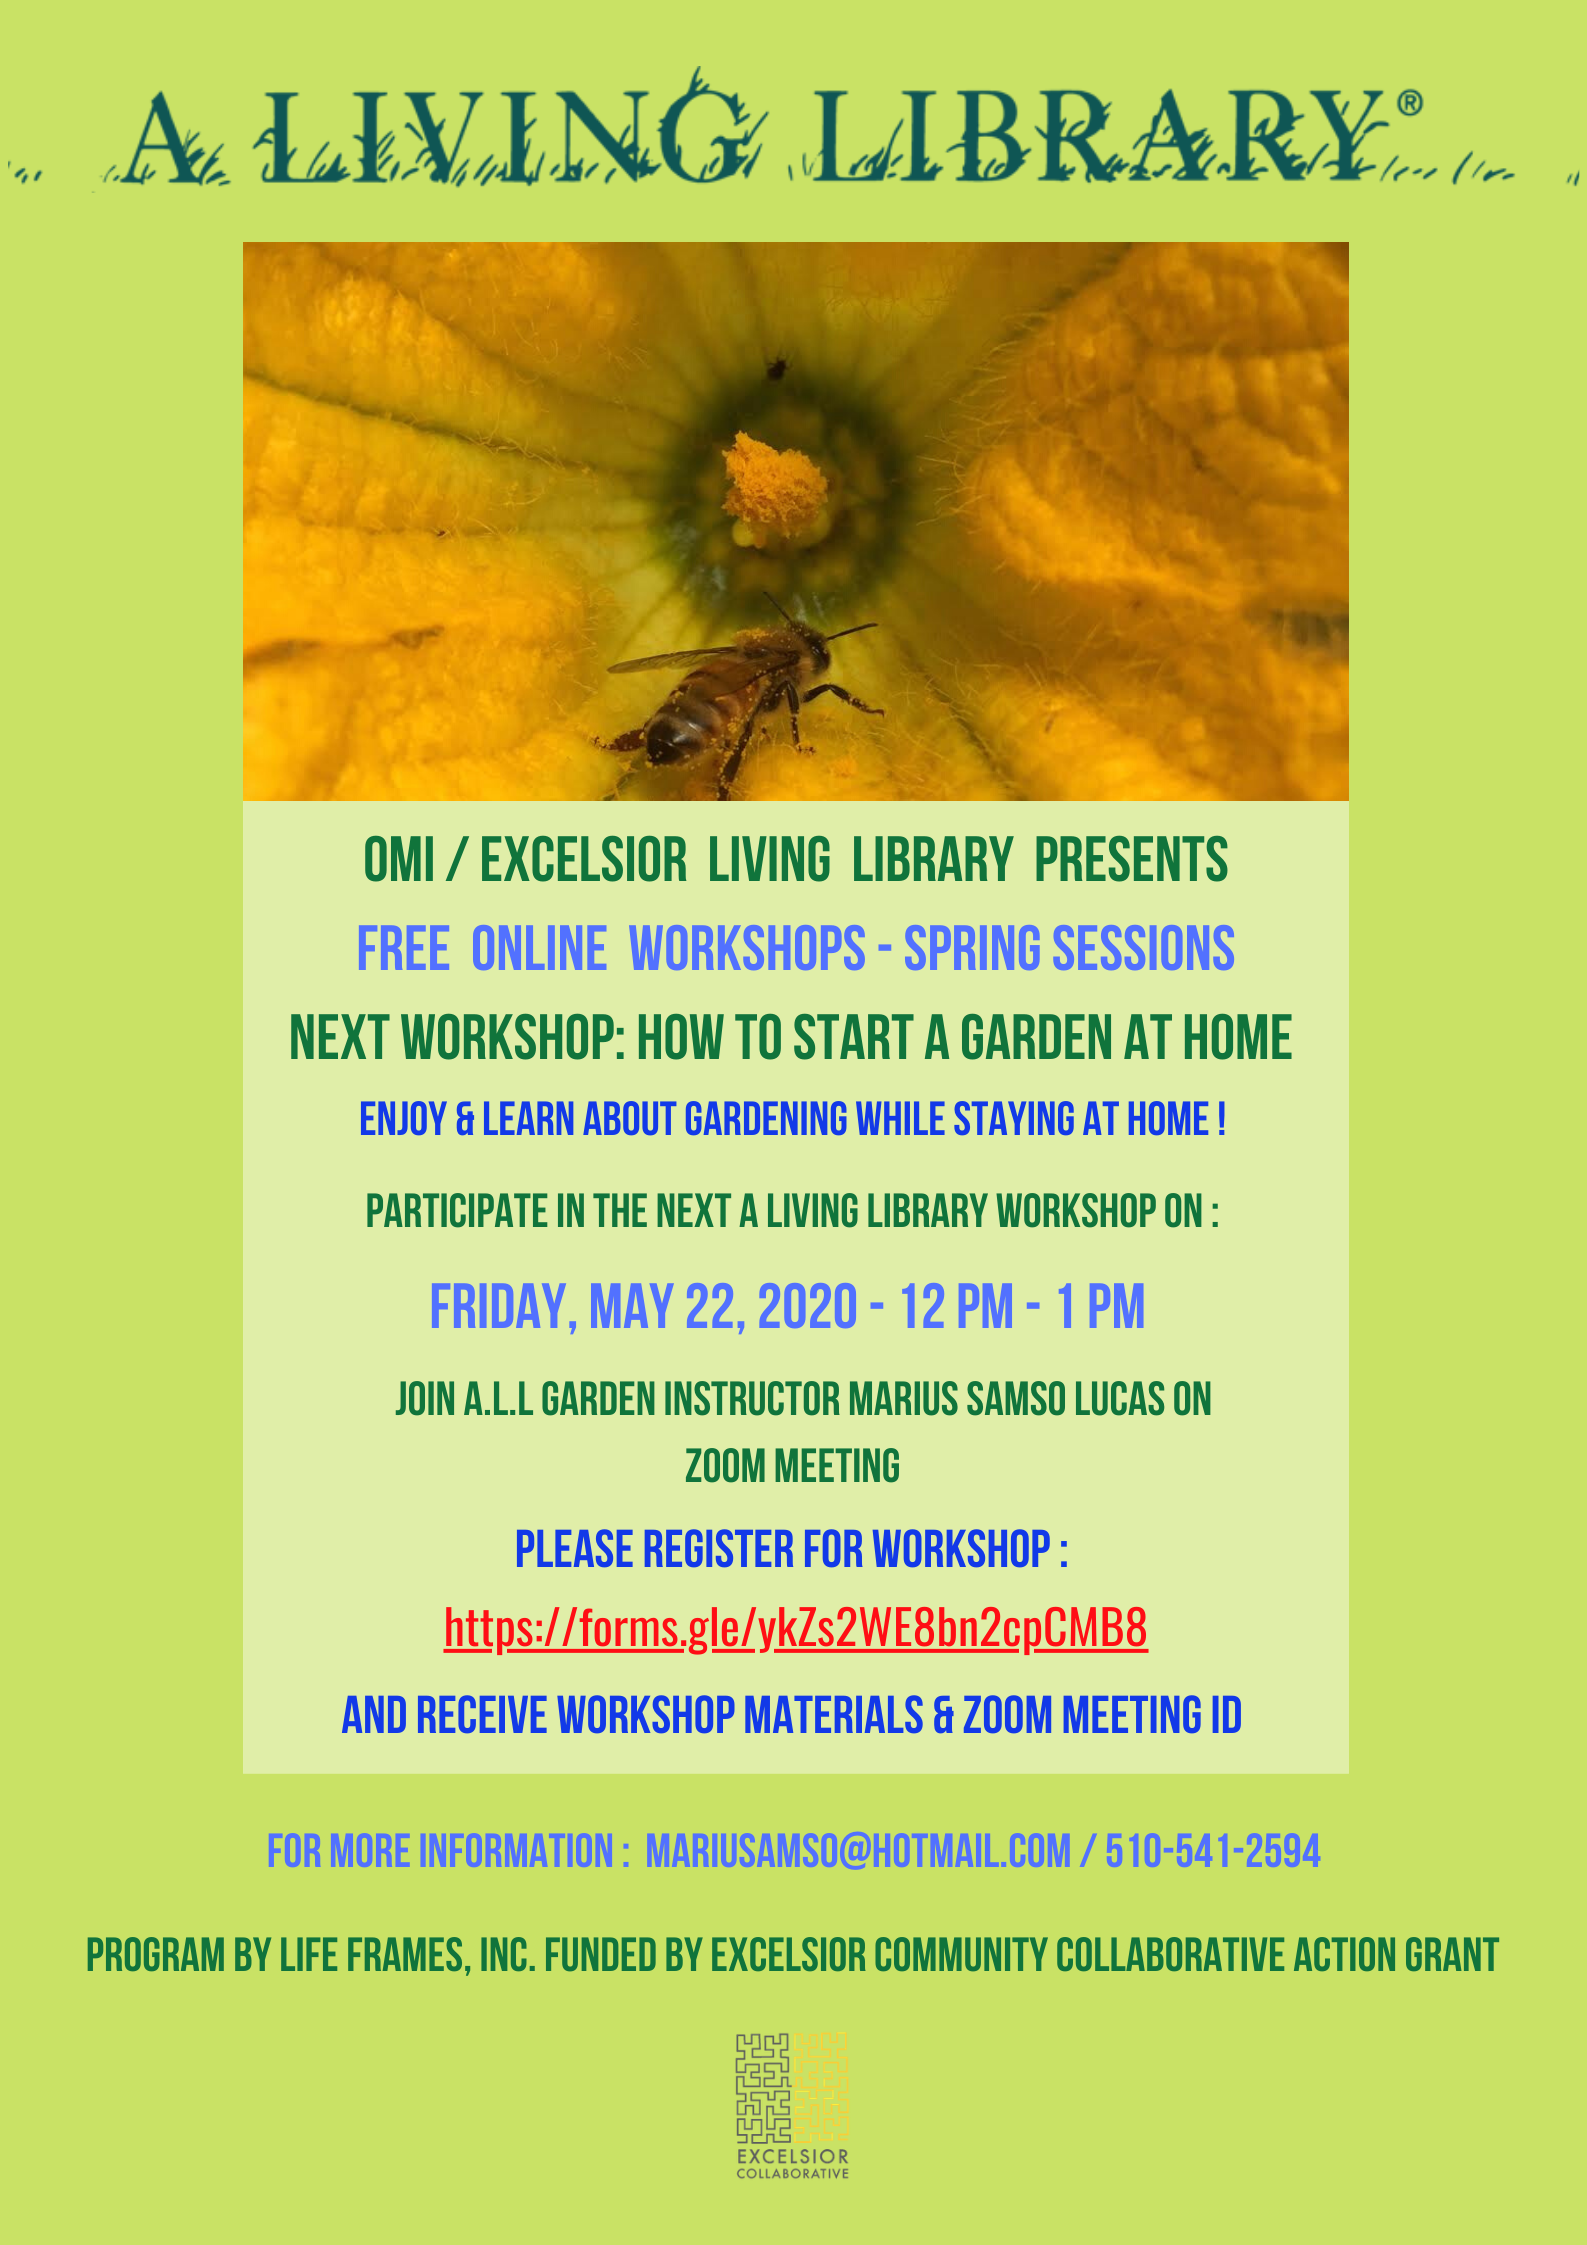 A Living Library Free Community Organic Gardening Workshop_MAY 2020